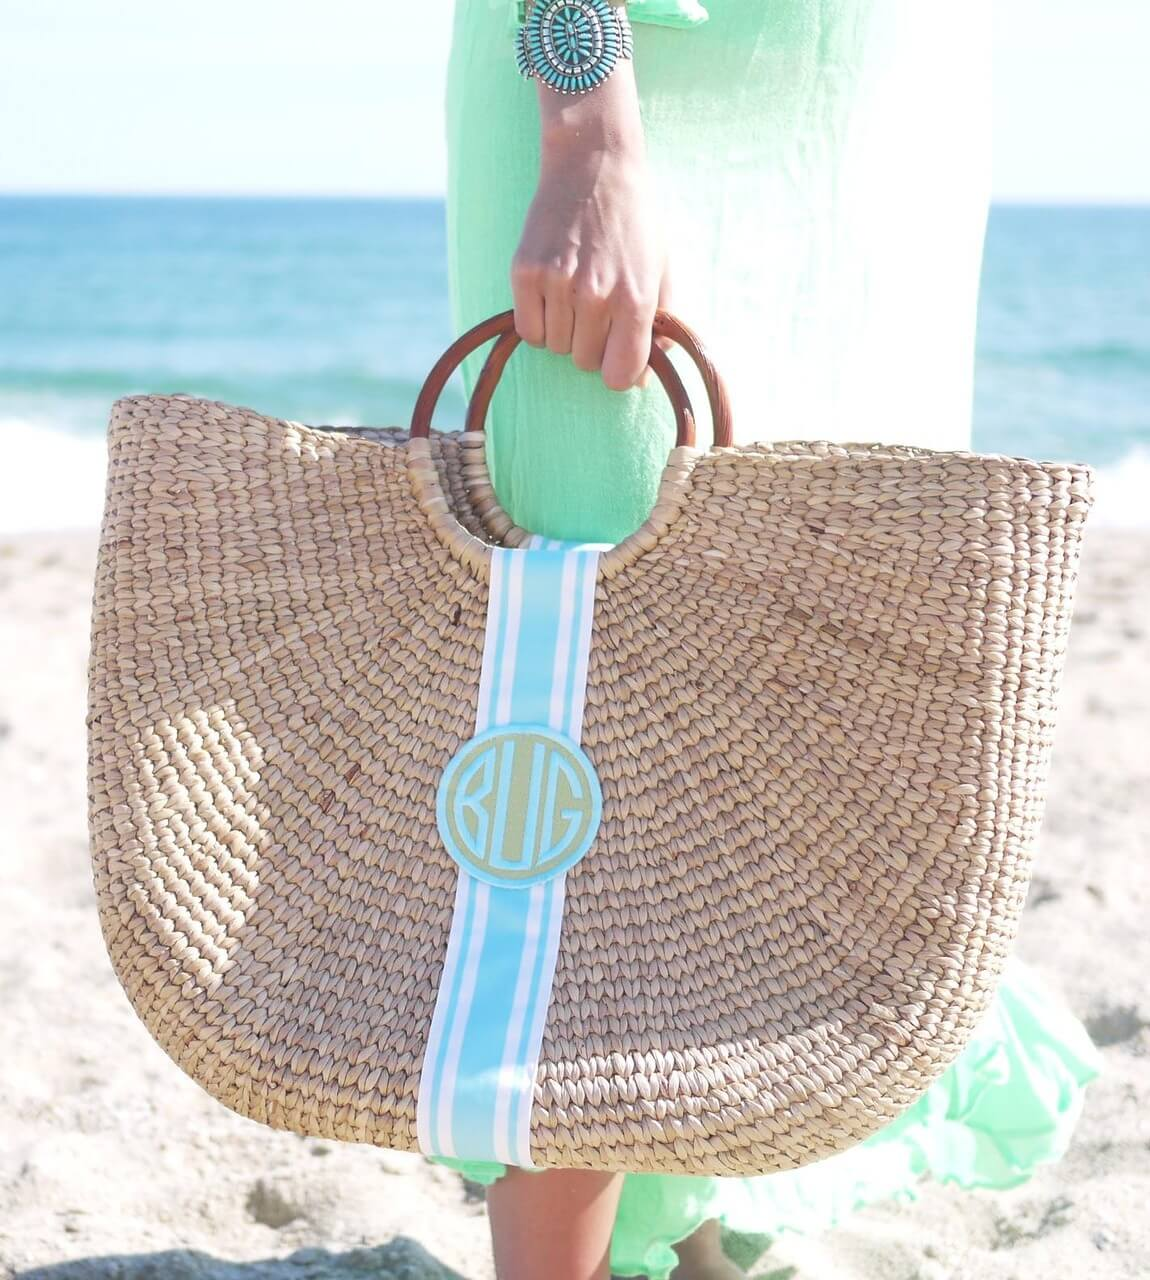 Monogrammed_beach_bag_straw_basket_calypso_dress_buggy_designs__79152.1403550931.1280.1280